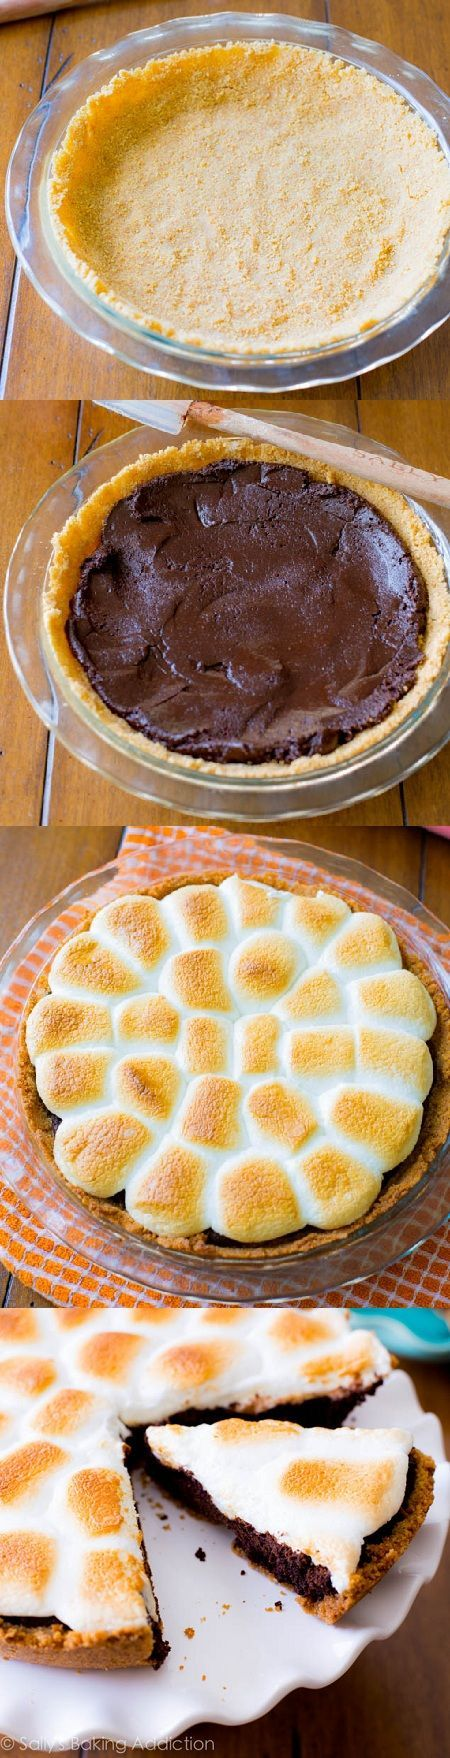 Exactly how to make fudgy S'mores Brownie Pie. Everyone LOVED this!